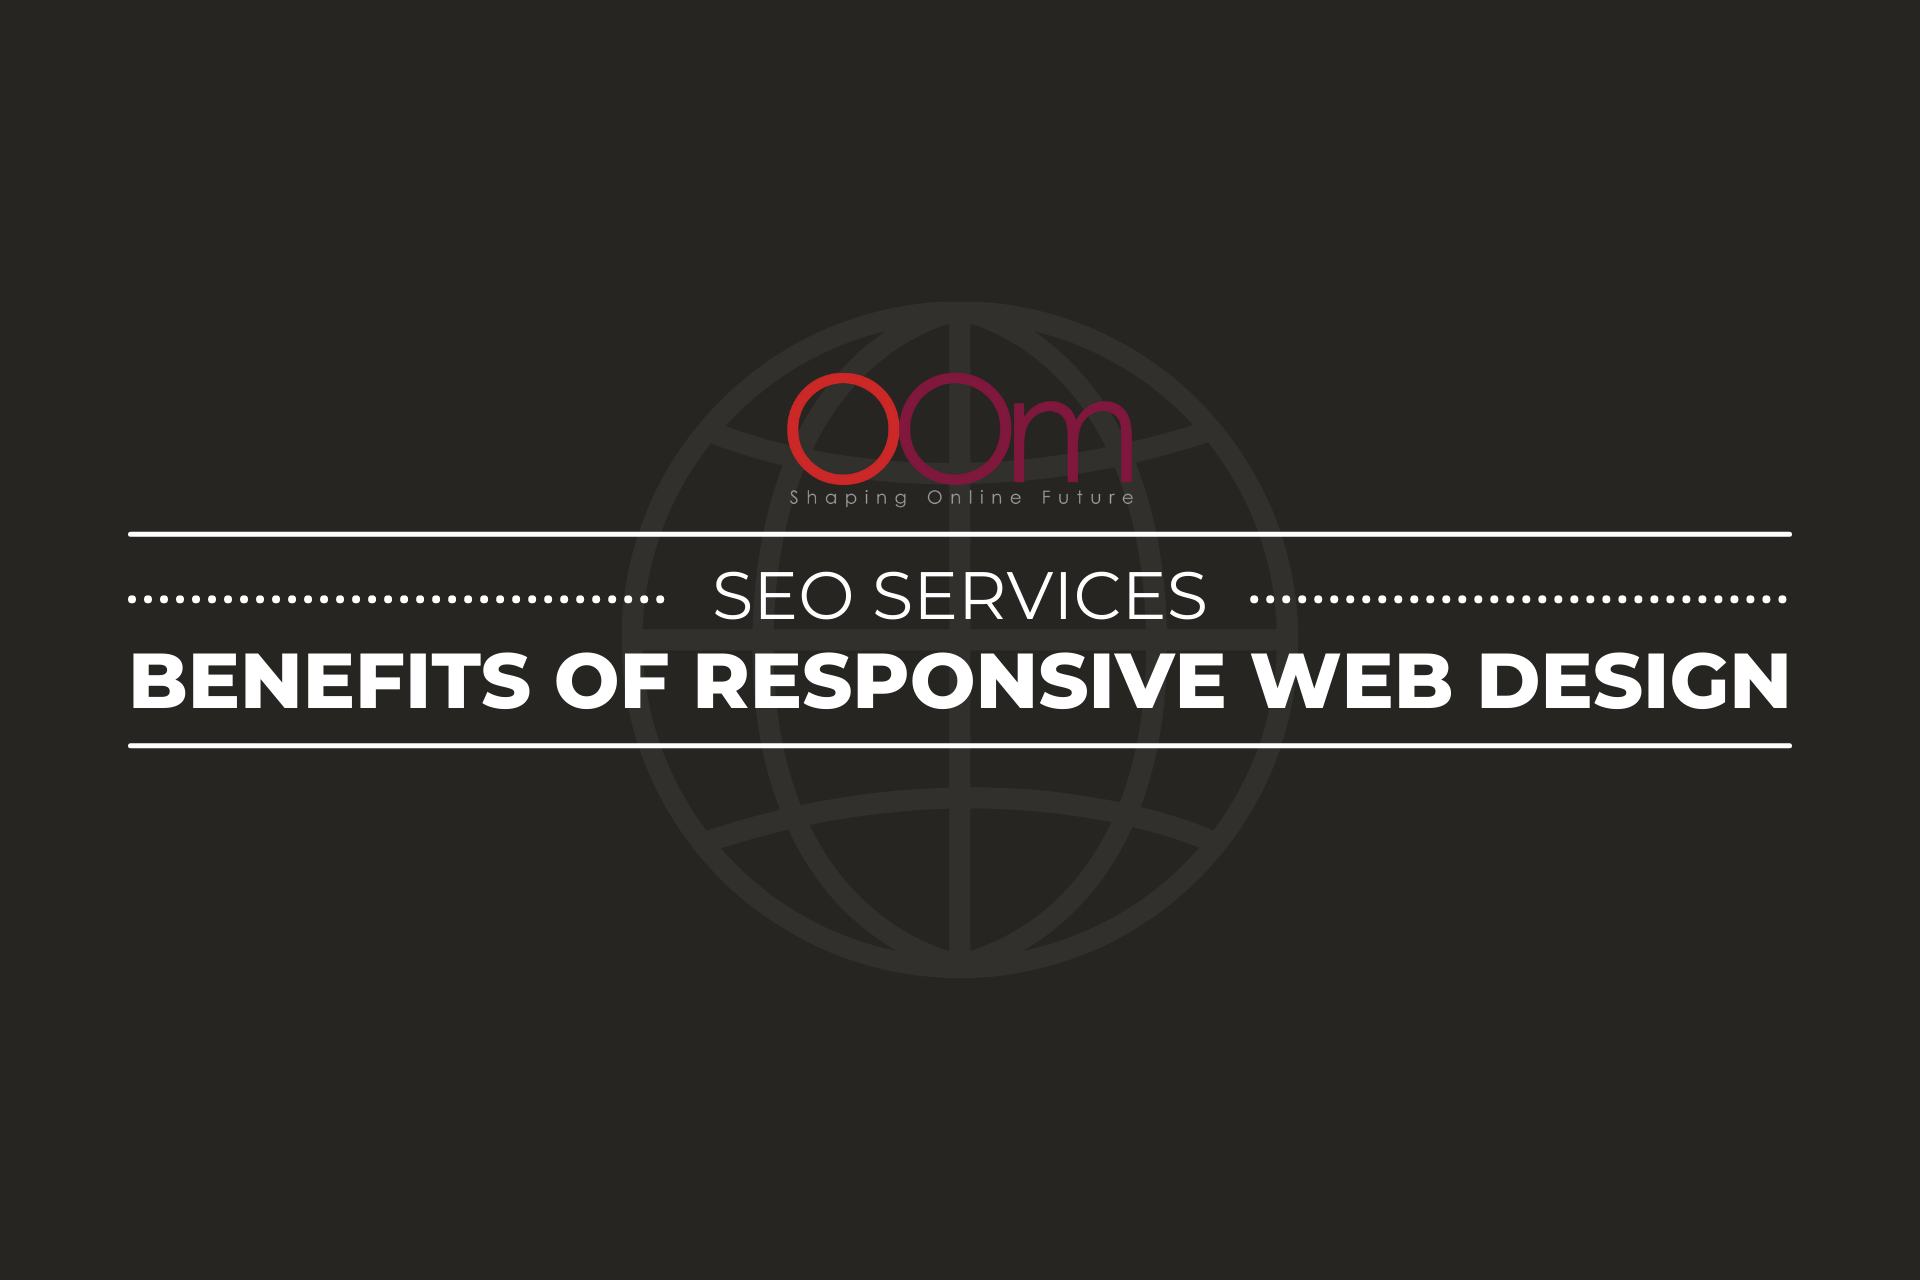 Benefits Of Responsive Web Design For SEO